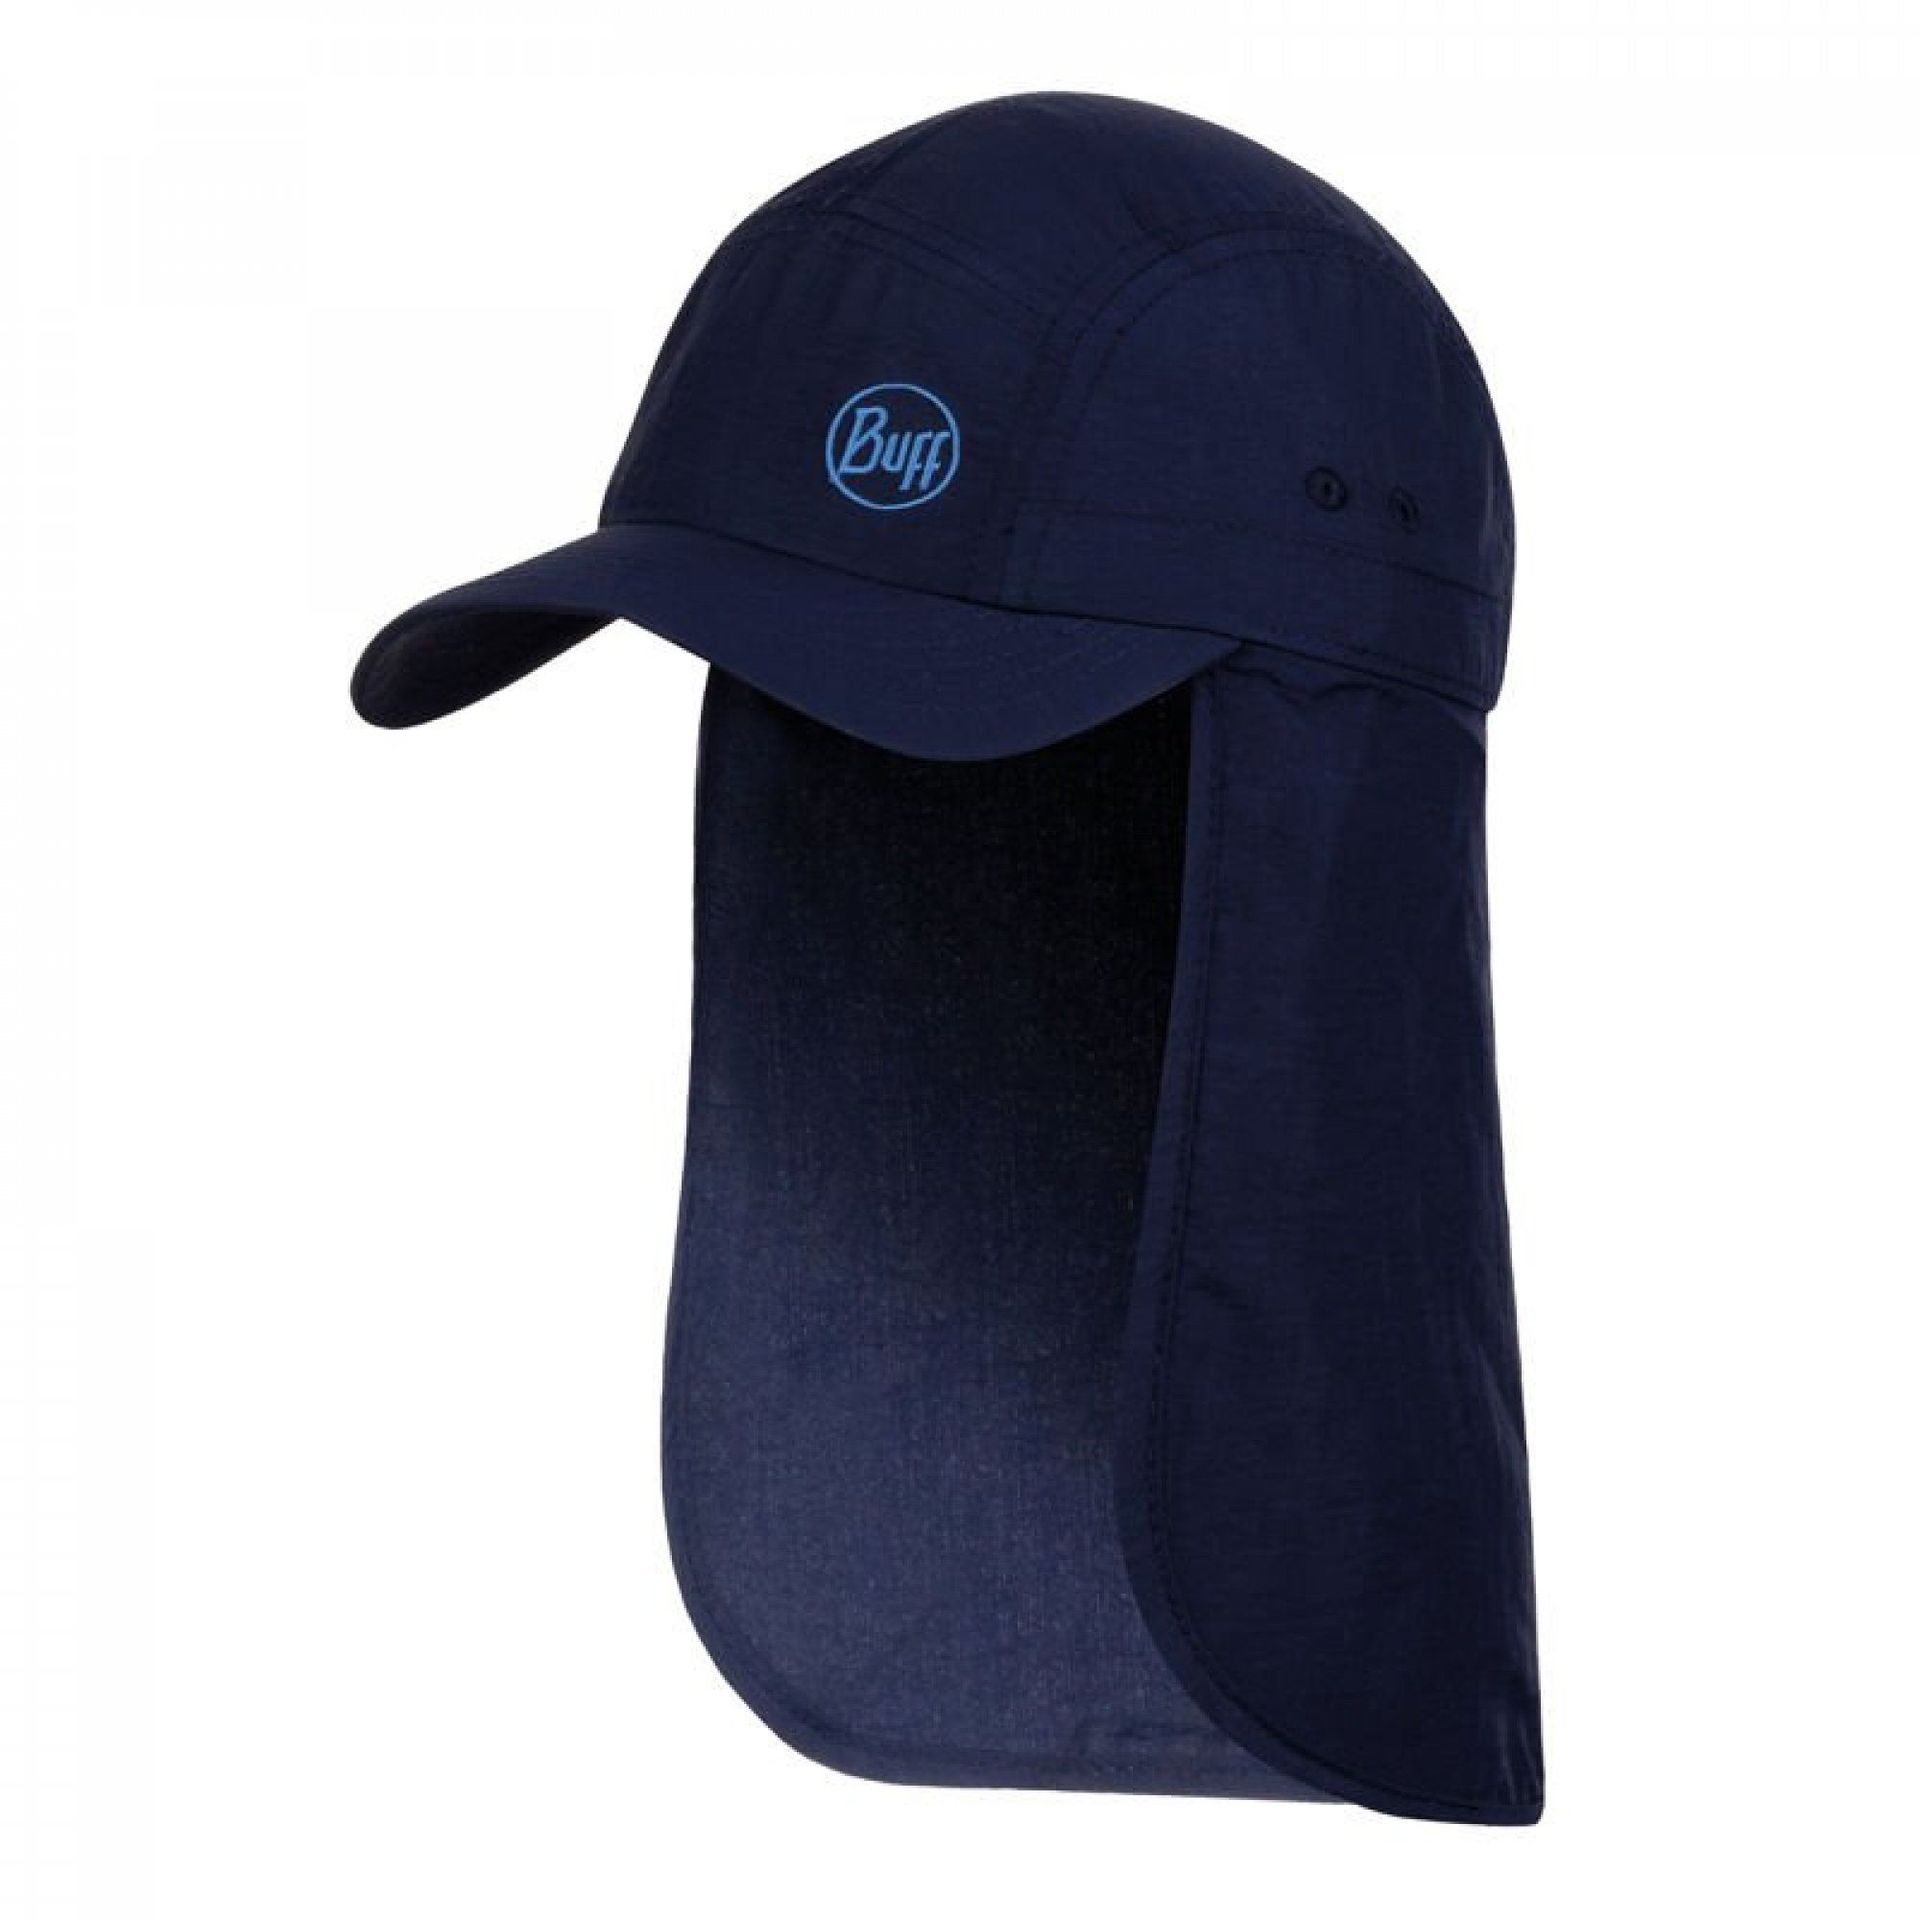 CZAPKA BUFF BIMINI CAP JR SOLID NAVY